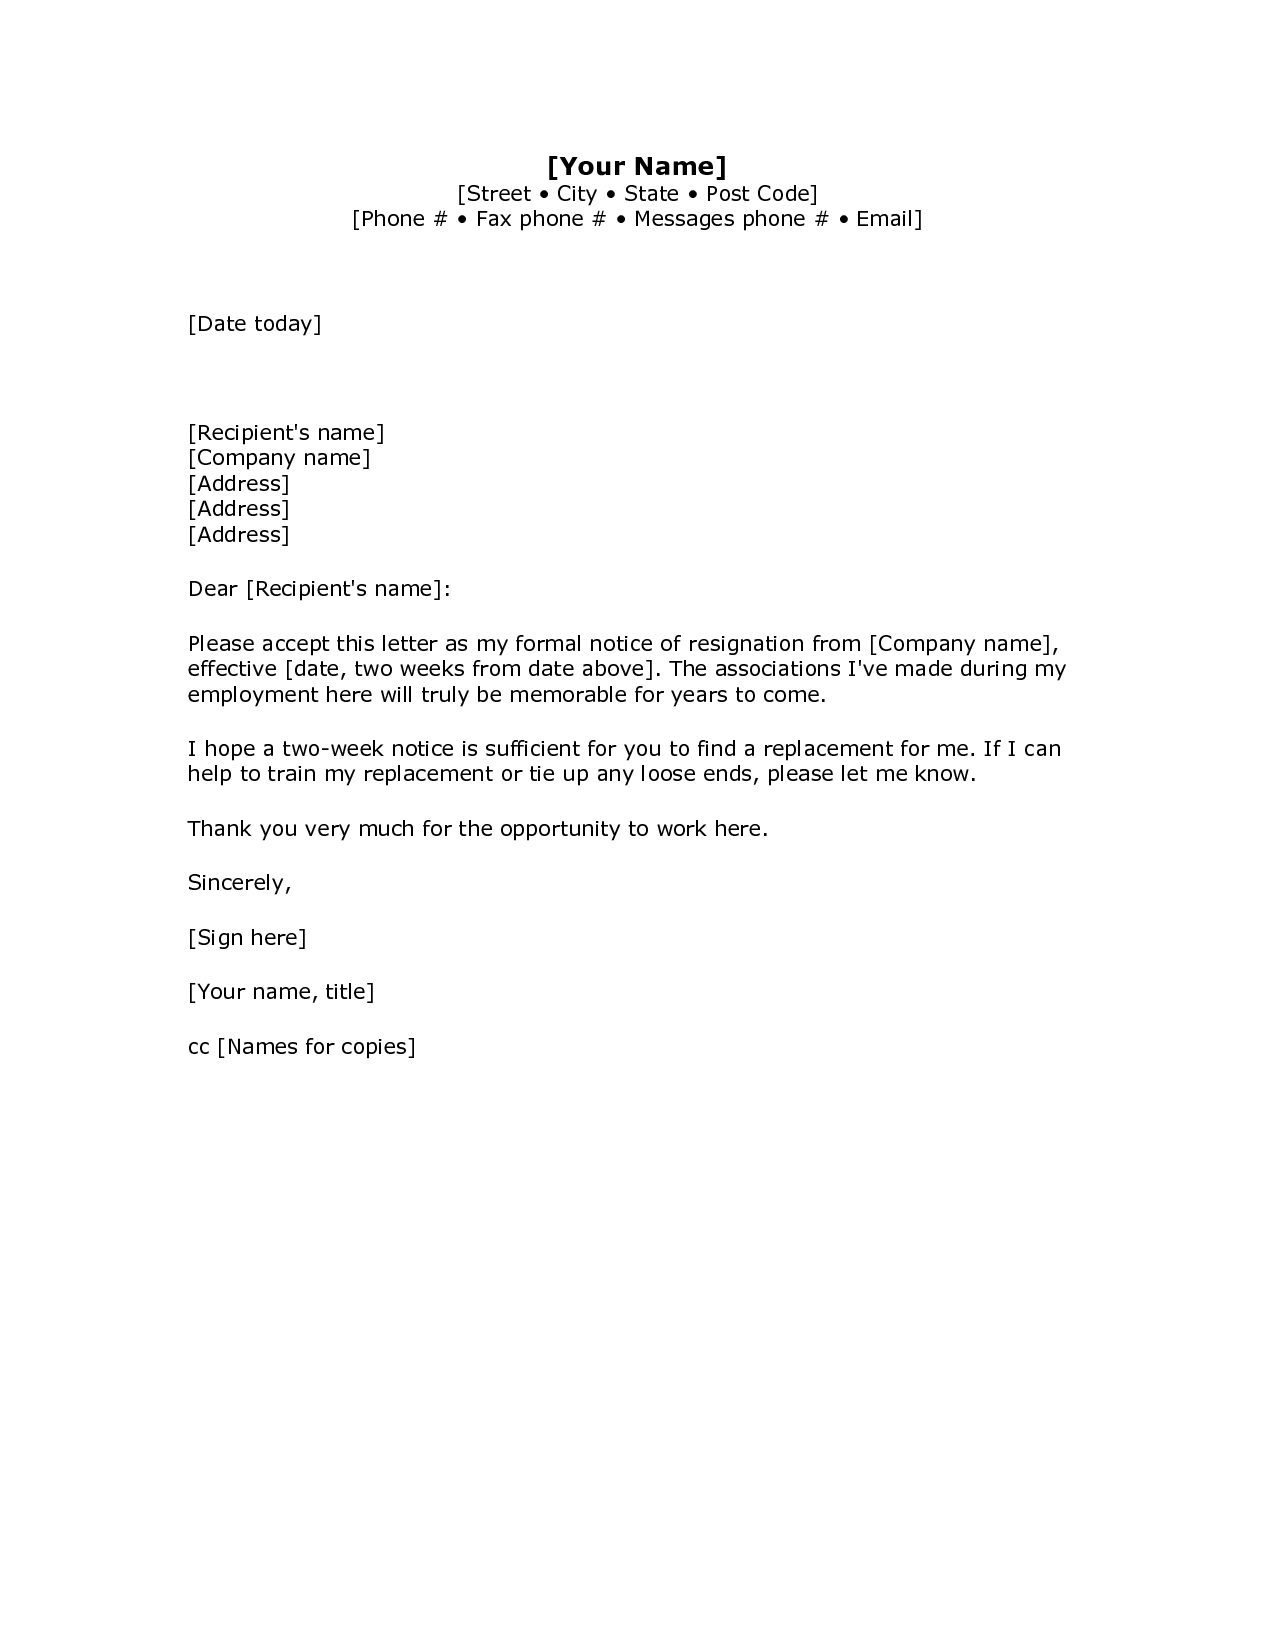 simple resignation letter template word example-2 Weeks Notice Letter Resignation Letter Week Notice Words HDWriting A Letter Resignation Email Letter Sample 10-o